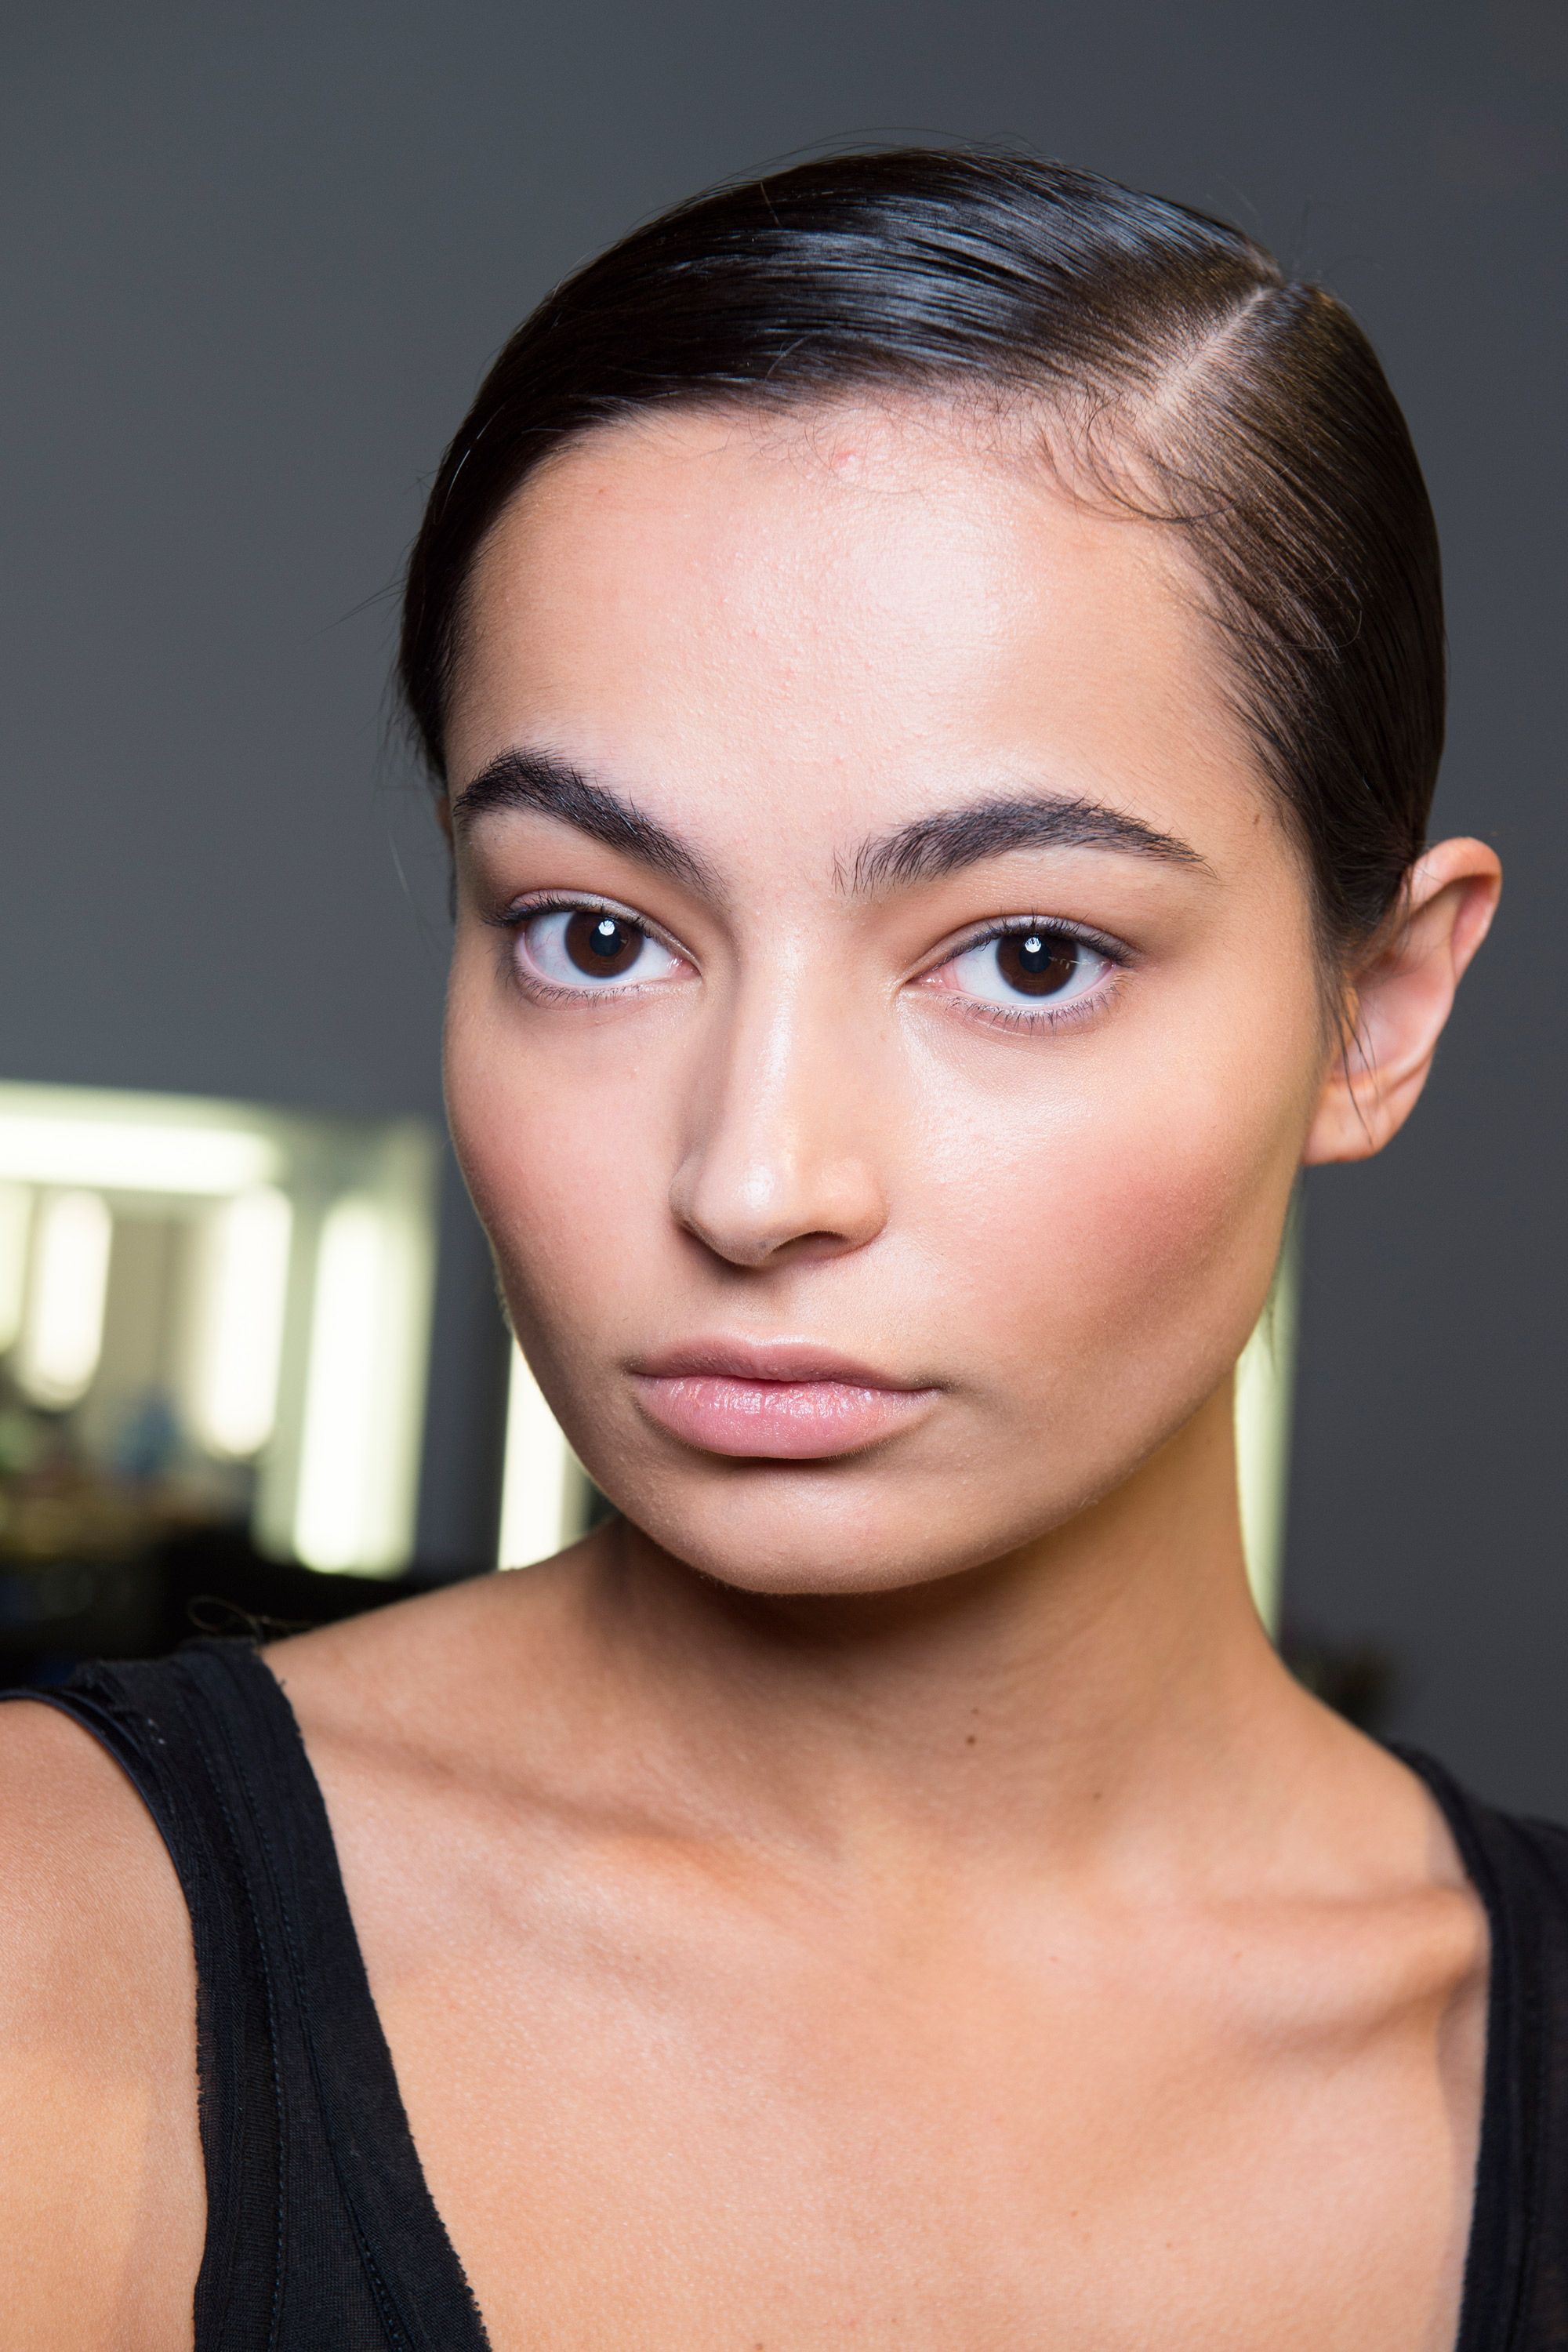 Charlotte Tilbury Spring 2019 Supermodel Brow Lift Collection photo